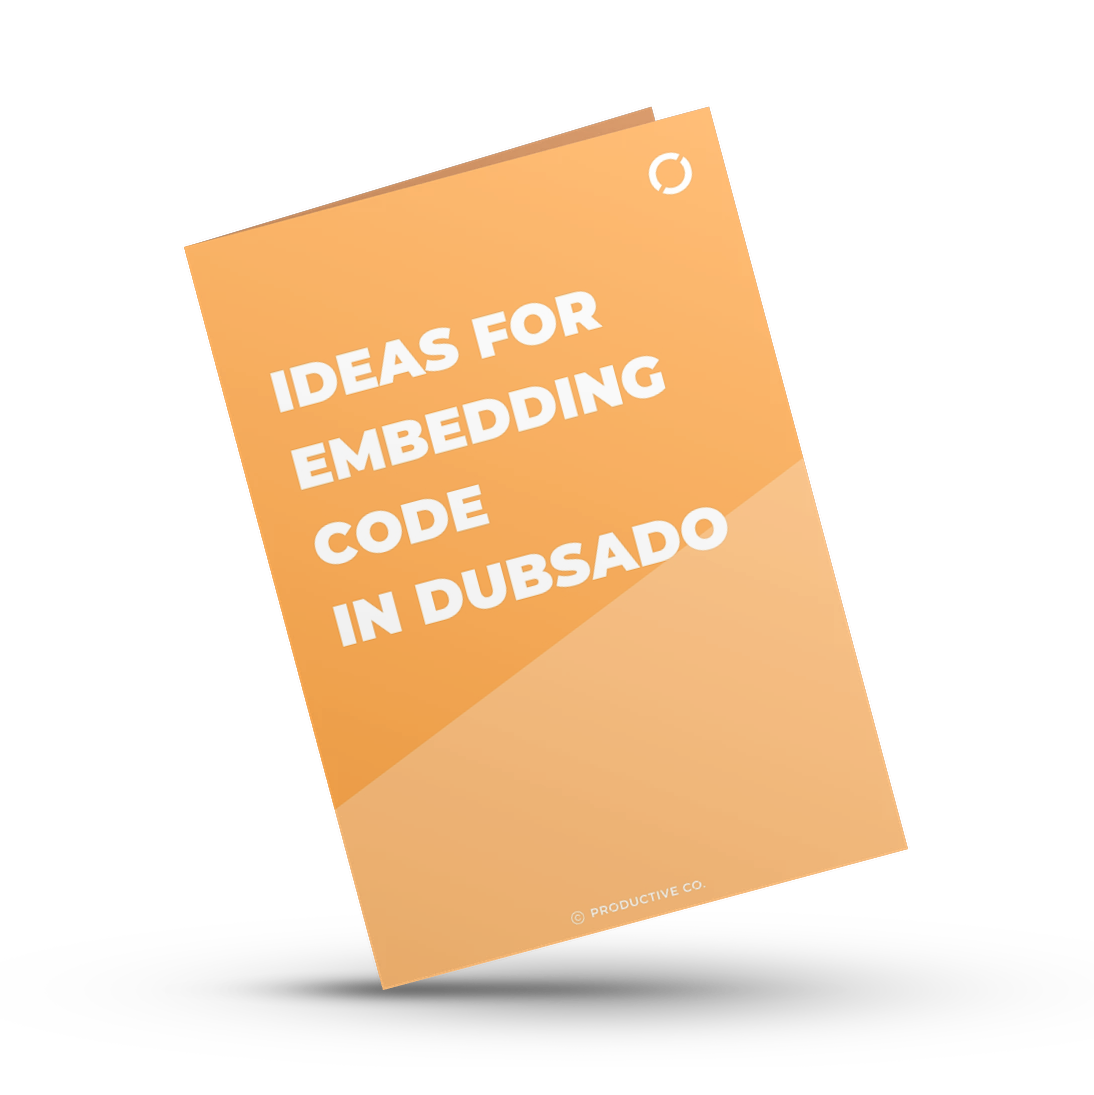 Get 10 ideas for code to embed in Dubsado. Ranging from Acuity or Calendly to AirTable and Google Sheets, find out how you can customize your forms in Dubsado by embedding code.